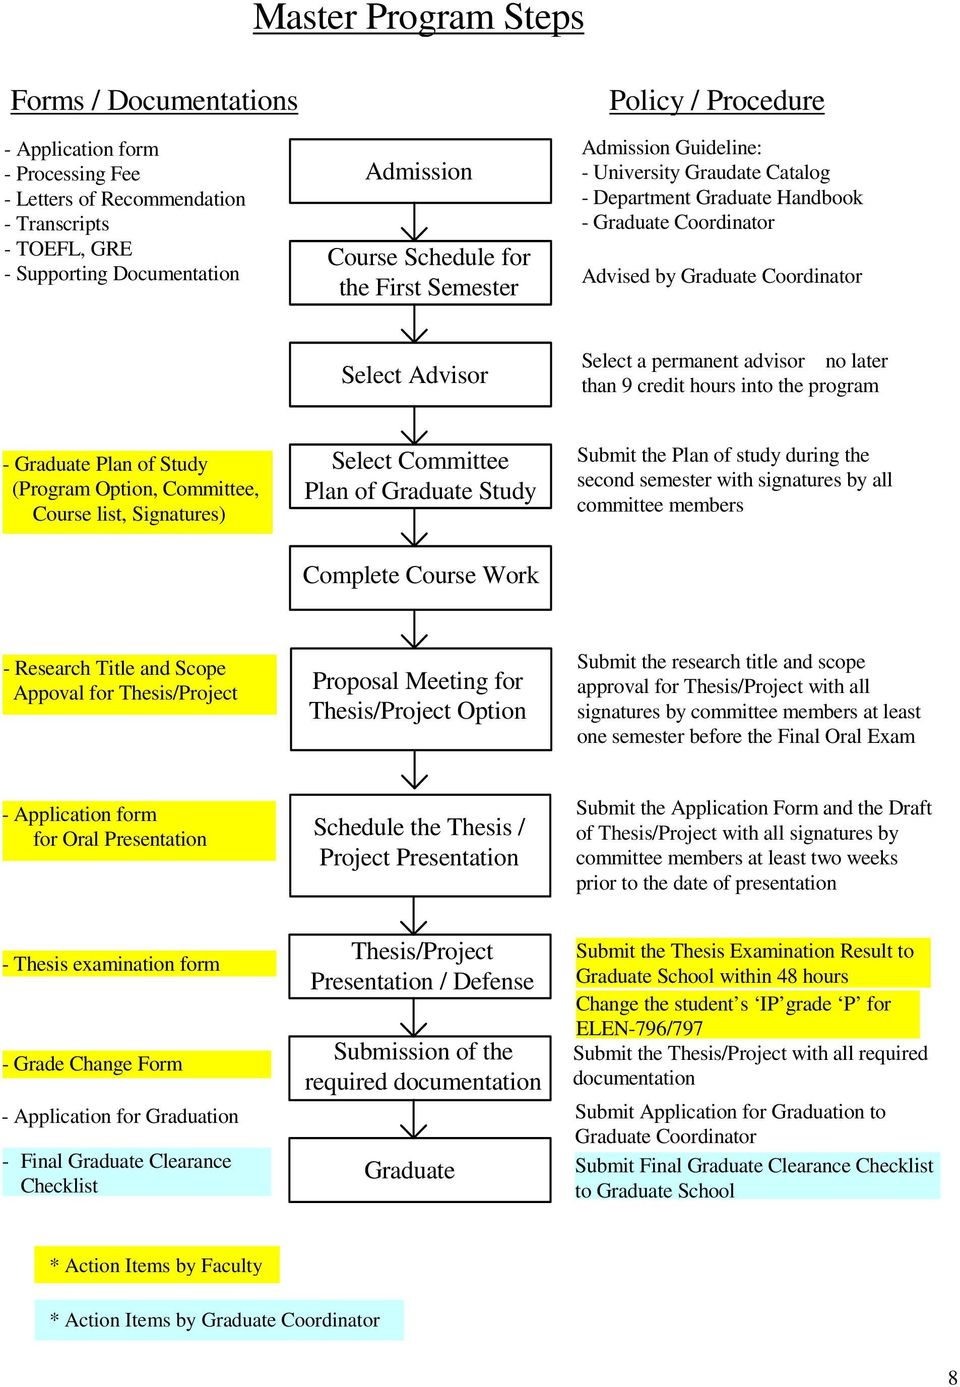 permanent advisor no later than 9 credit hours into the program - Graduate Plan of Study (Program Option, Committee, Course list, Signatures) Select Committee Plan of Graduate Study Submit the Plan